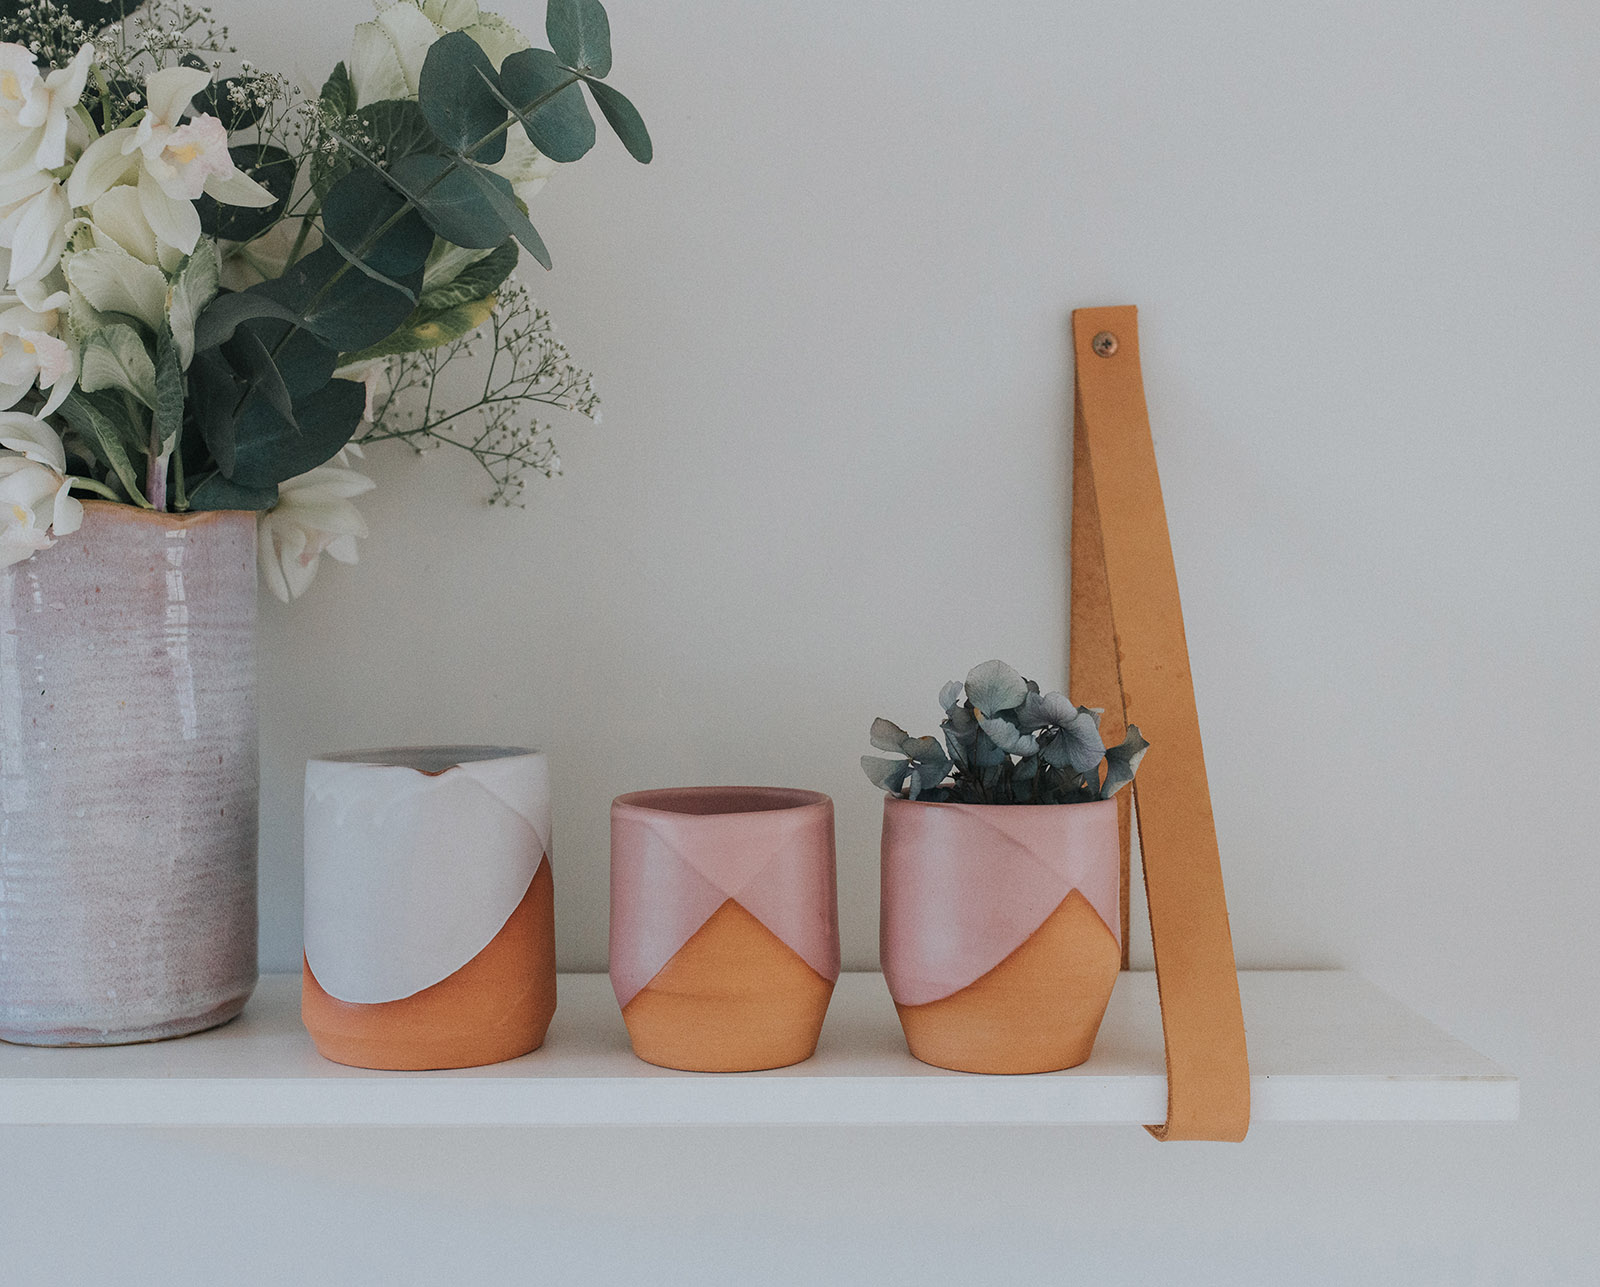 Low_res_Styled1_DIY_Leather_Strap_Shelves_By_Clever_Poppy_Blog2.jpg